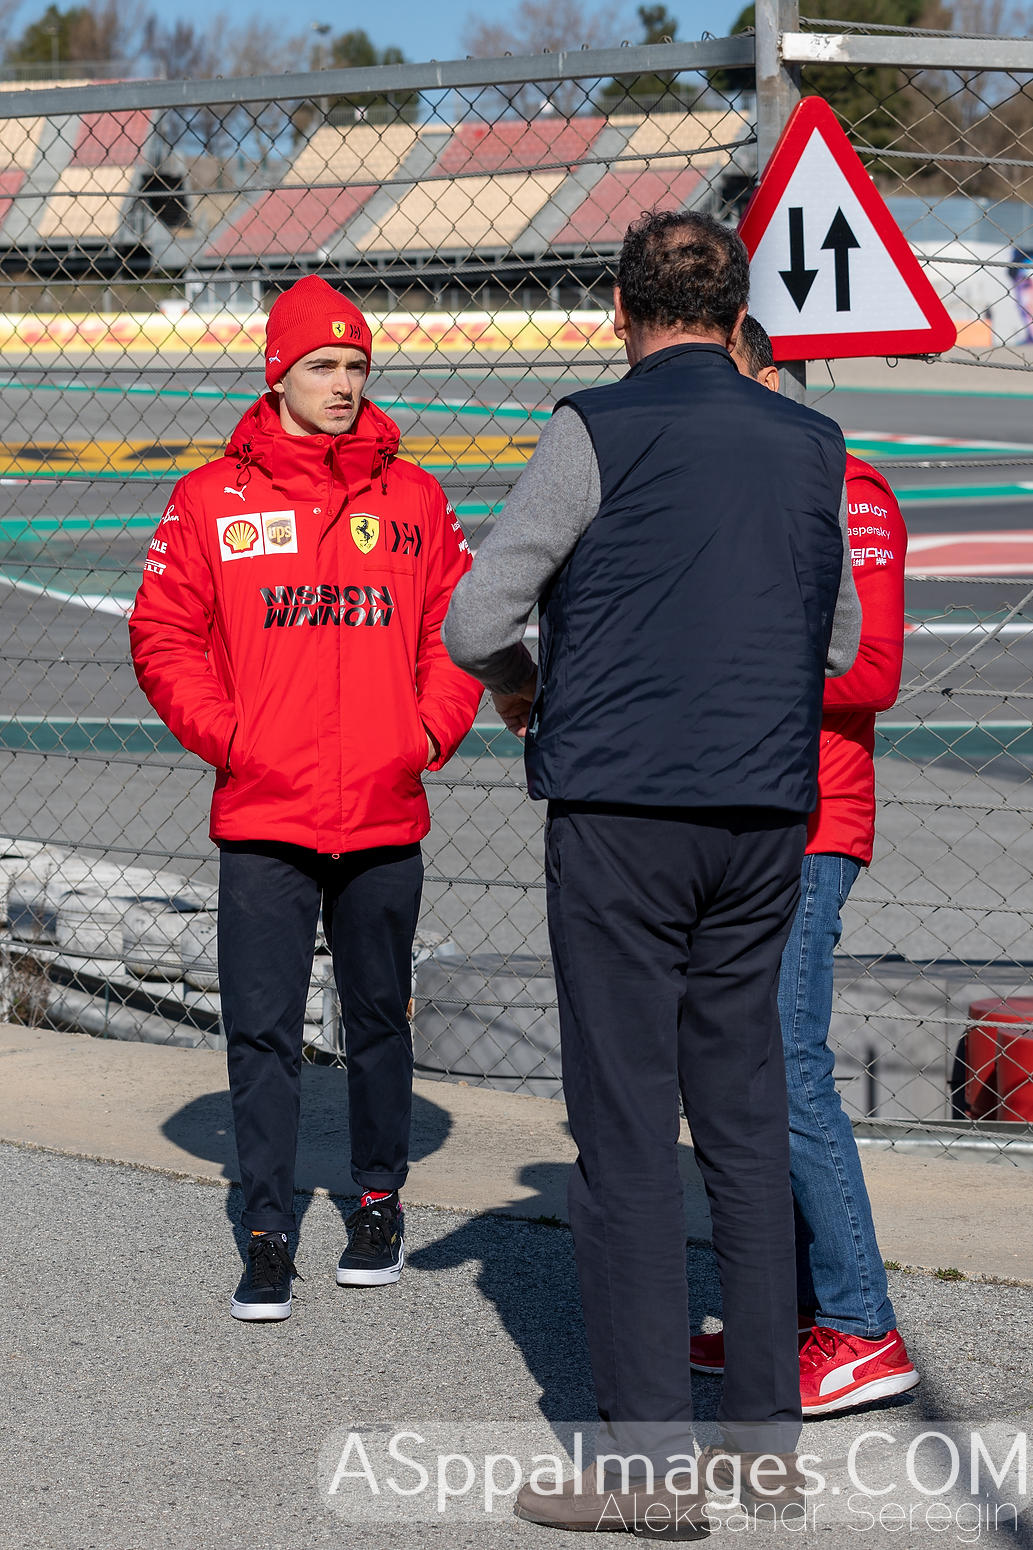 170.2020.FIA.F1.Test.Barcelona.Day.4.FER.ASppaImges.COM by ASppaImages.COM | Aleksandr B. Seregin (c).